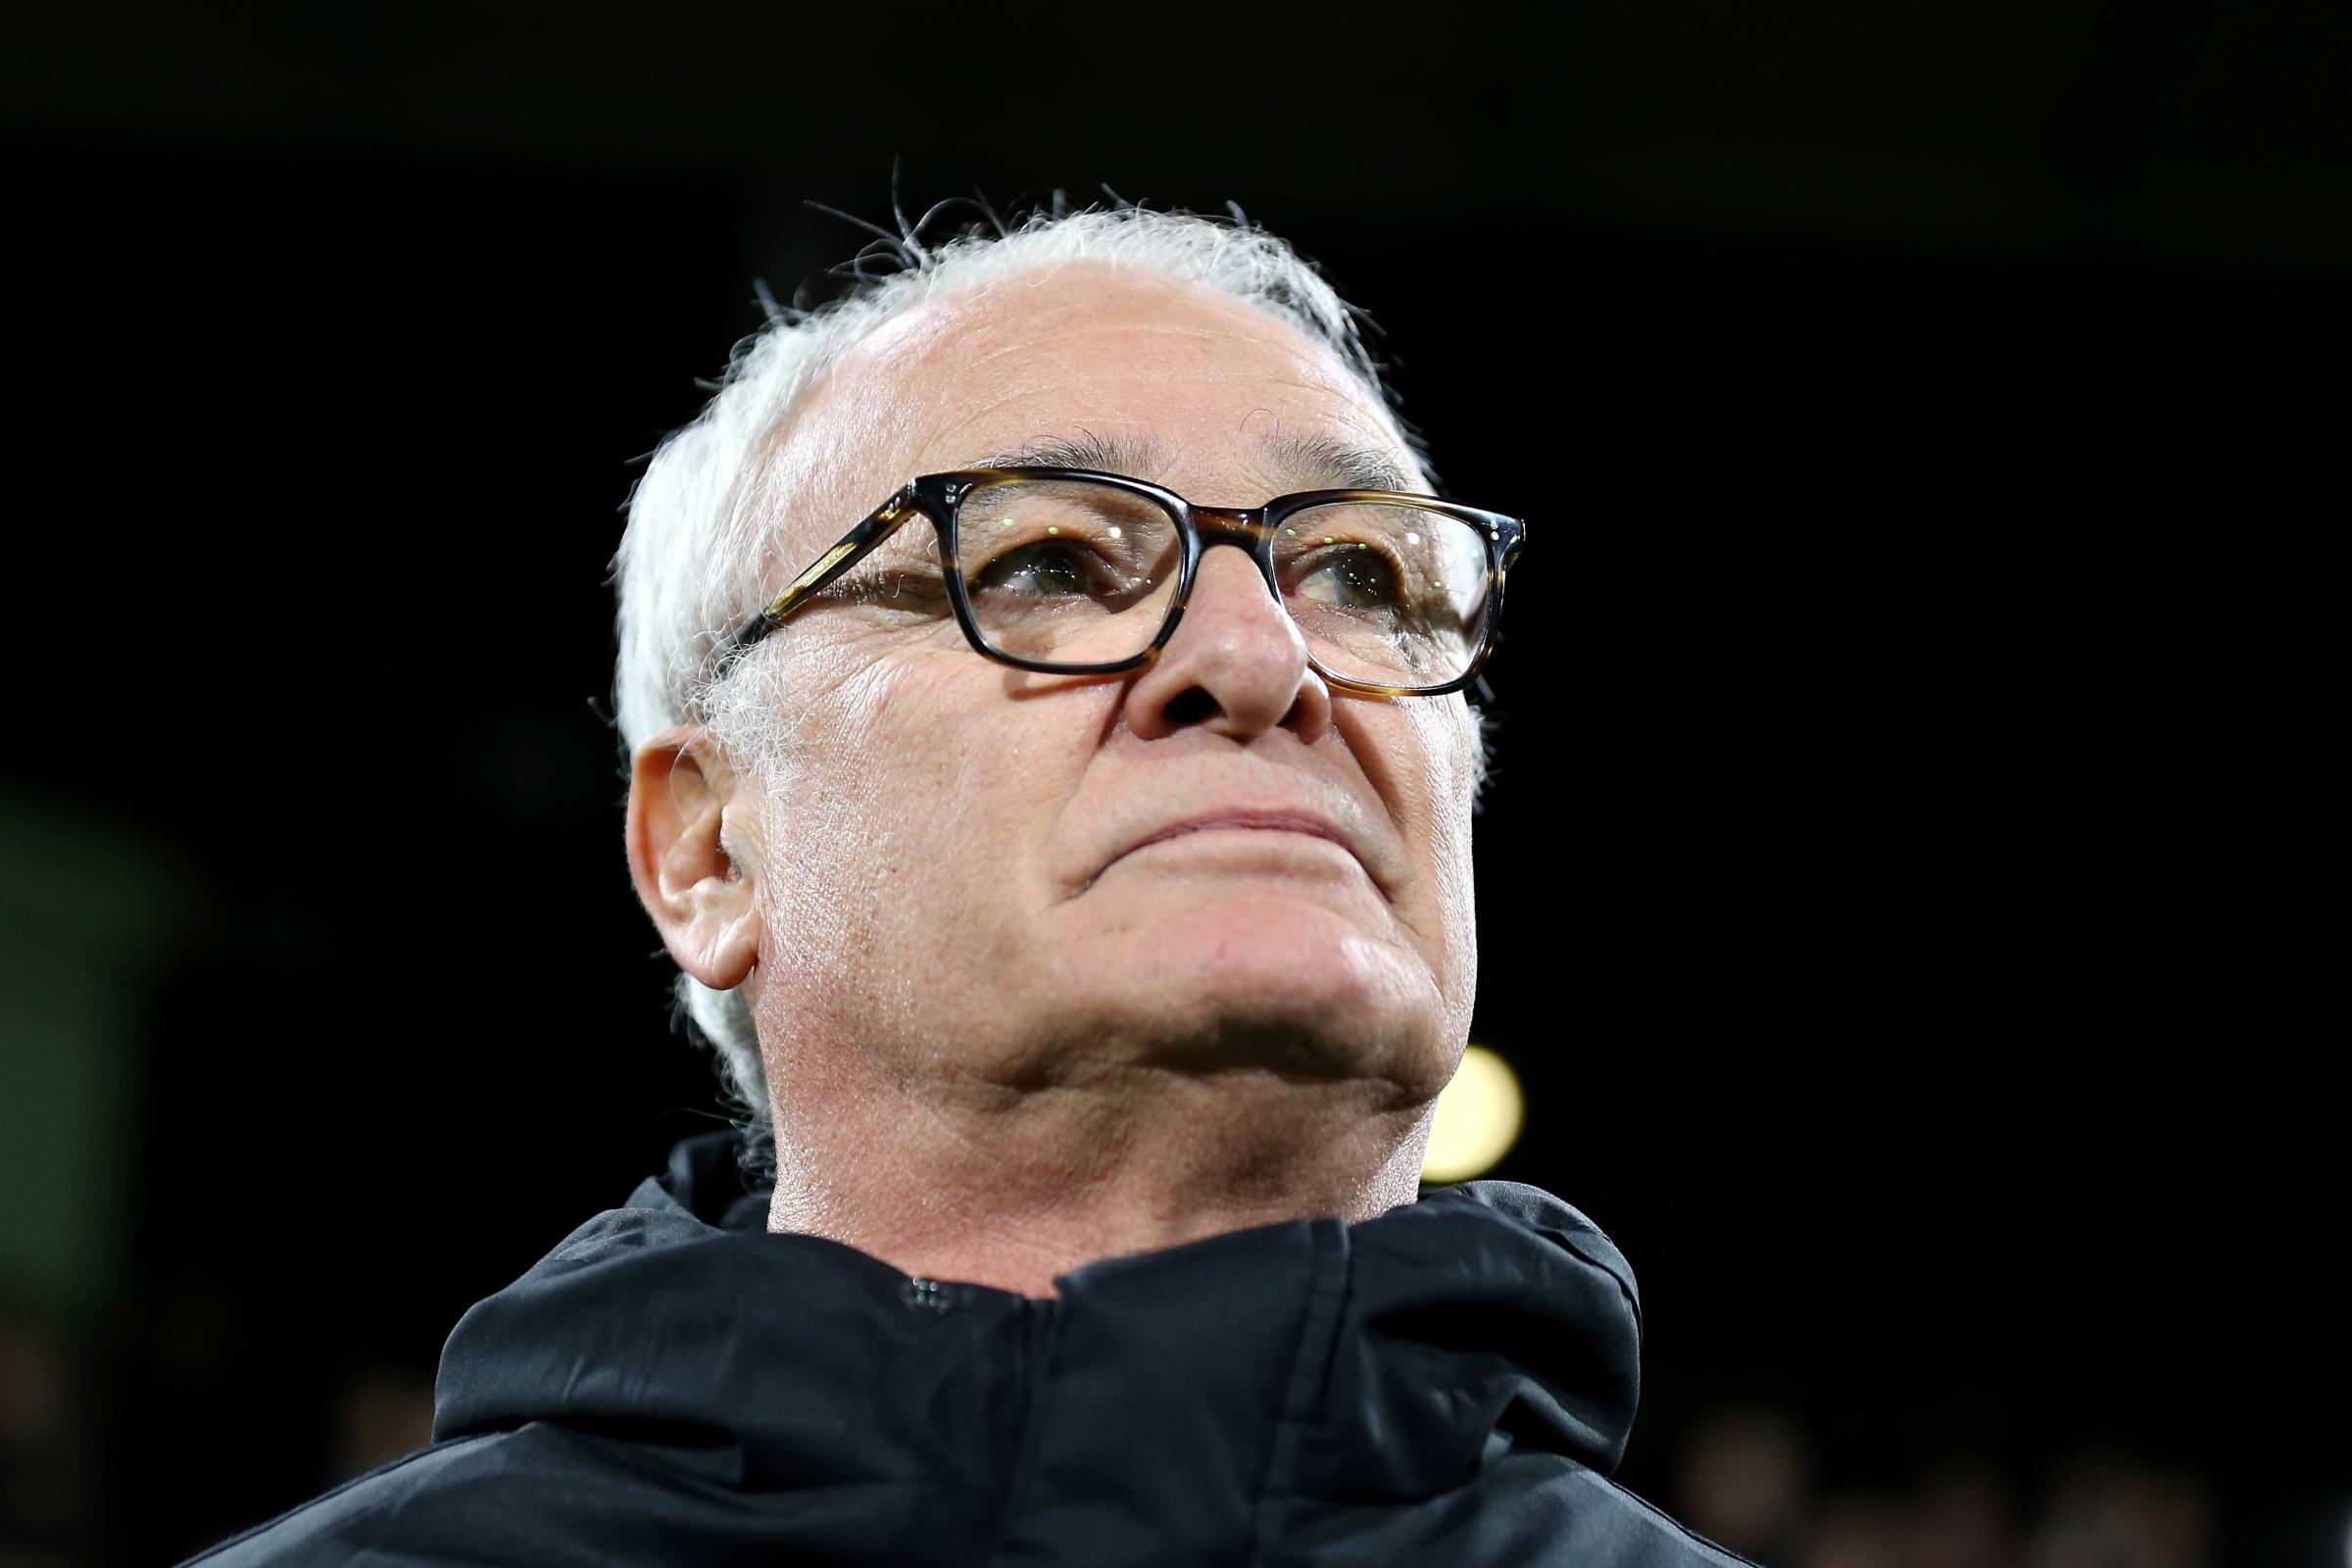 Fulham manager Claudio Ranieri goes up against Jose Mourinho again this weekend (Steven Paston/PA).